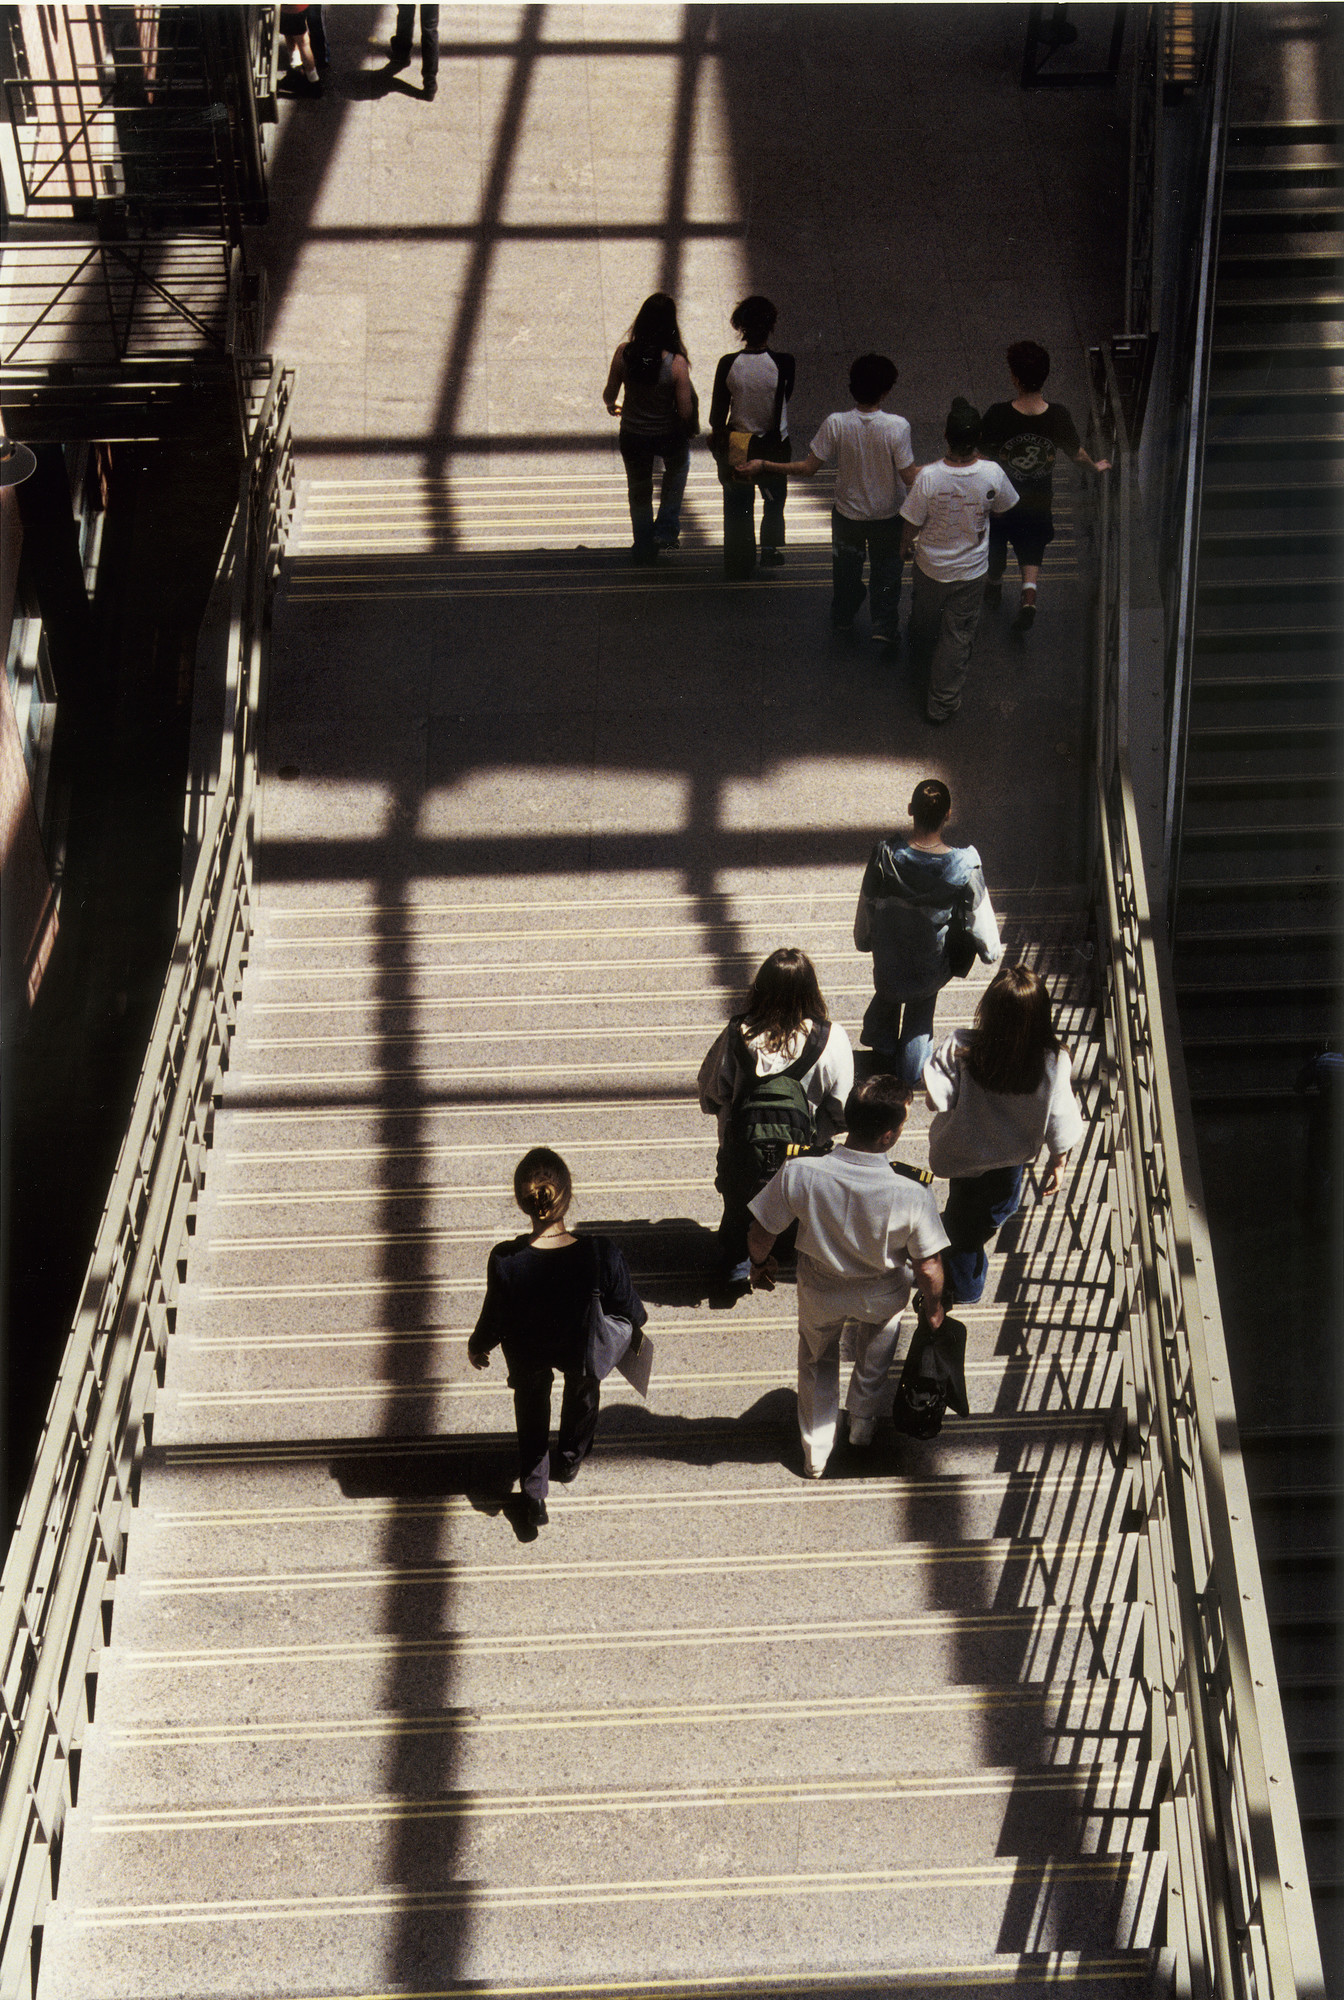 Visitors on the grand staircase in the Hall of Witness at the U.S. Holocaust Memorial Museum.